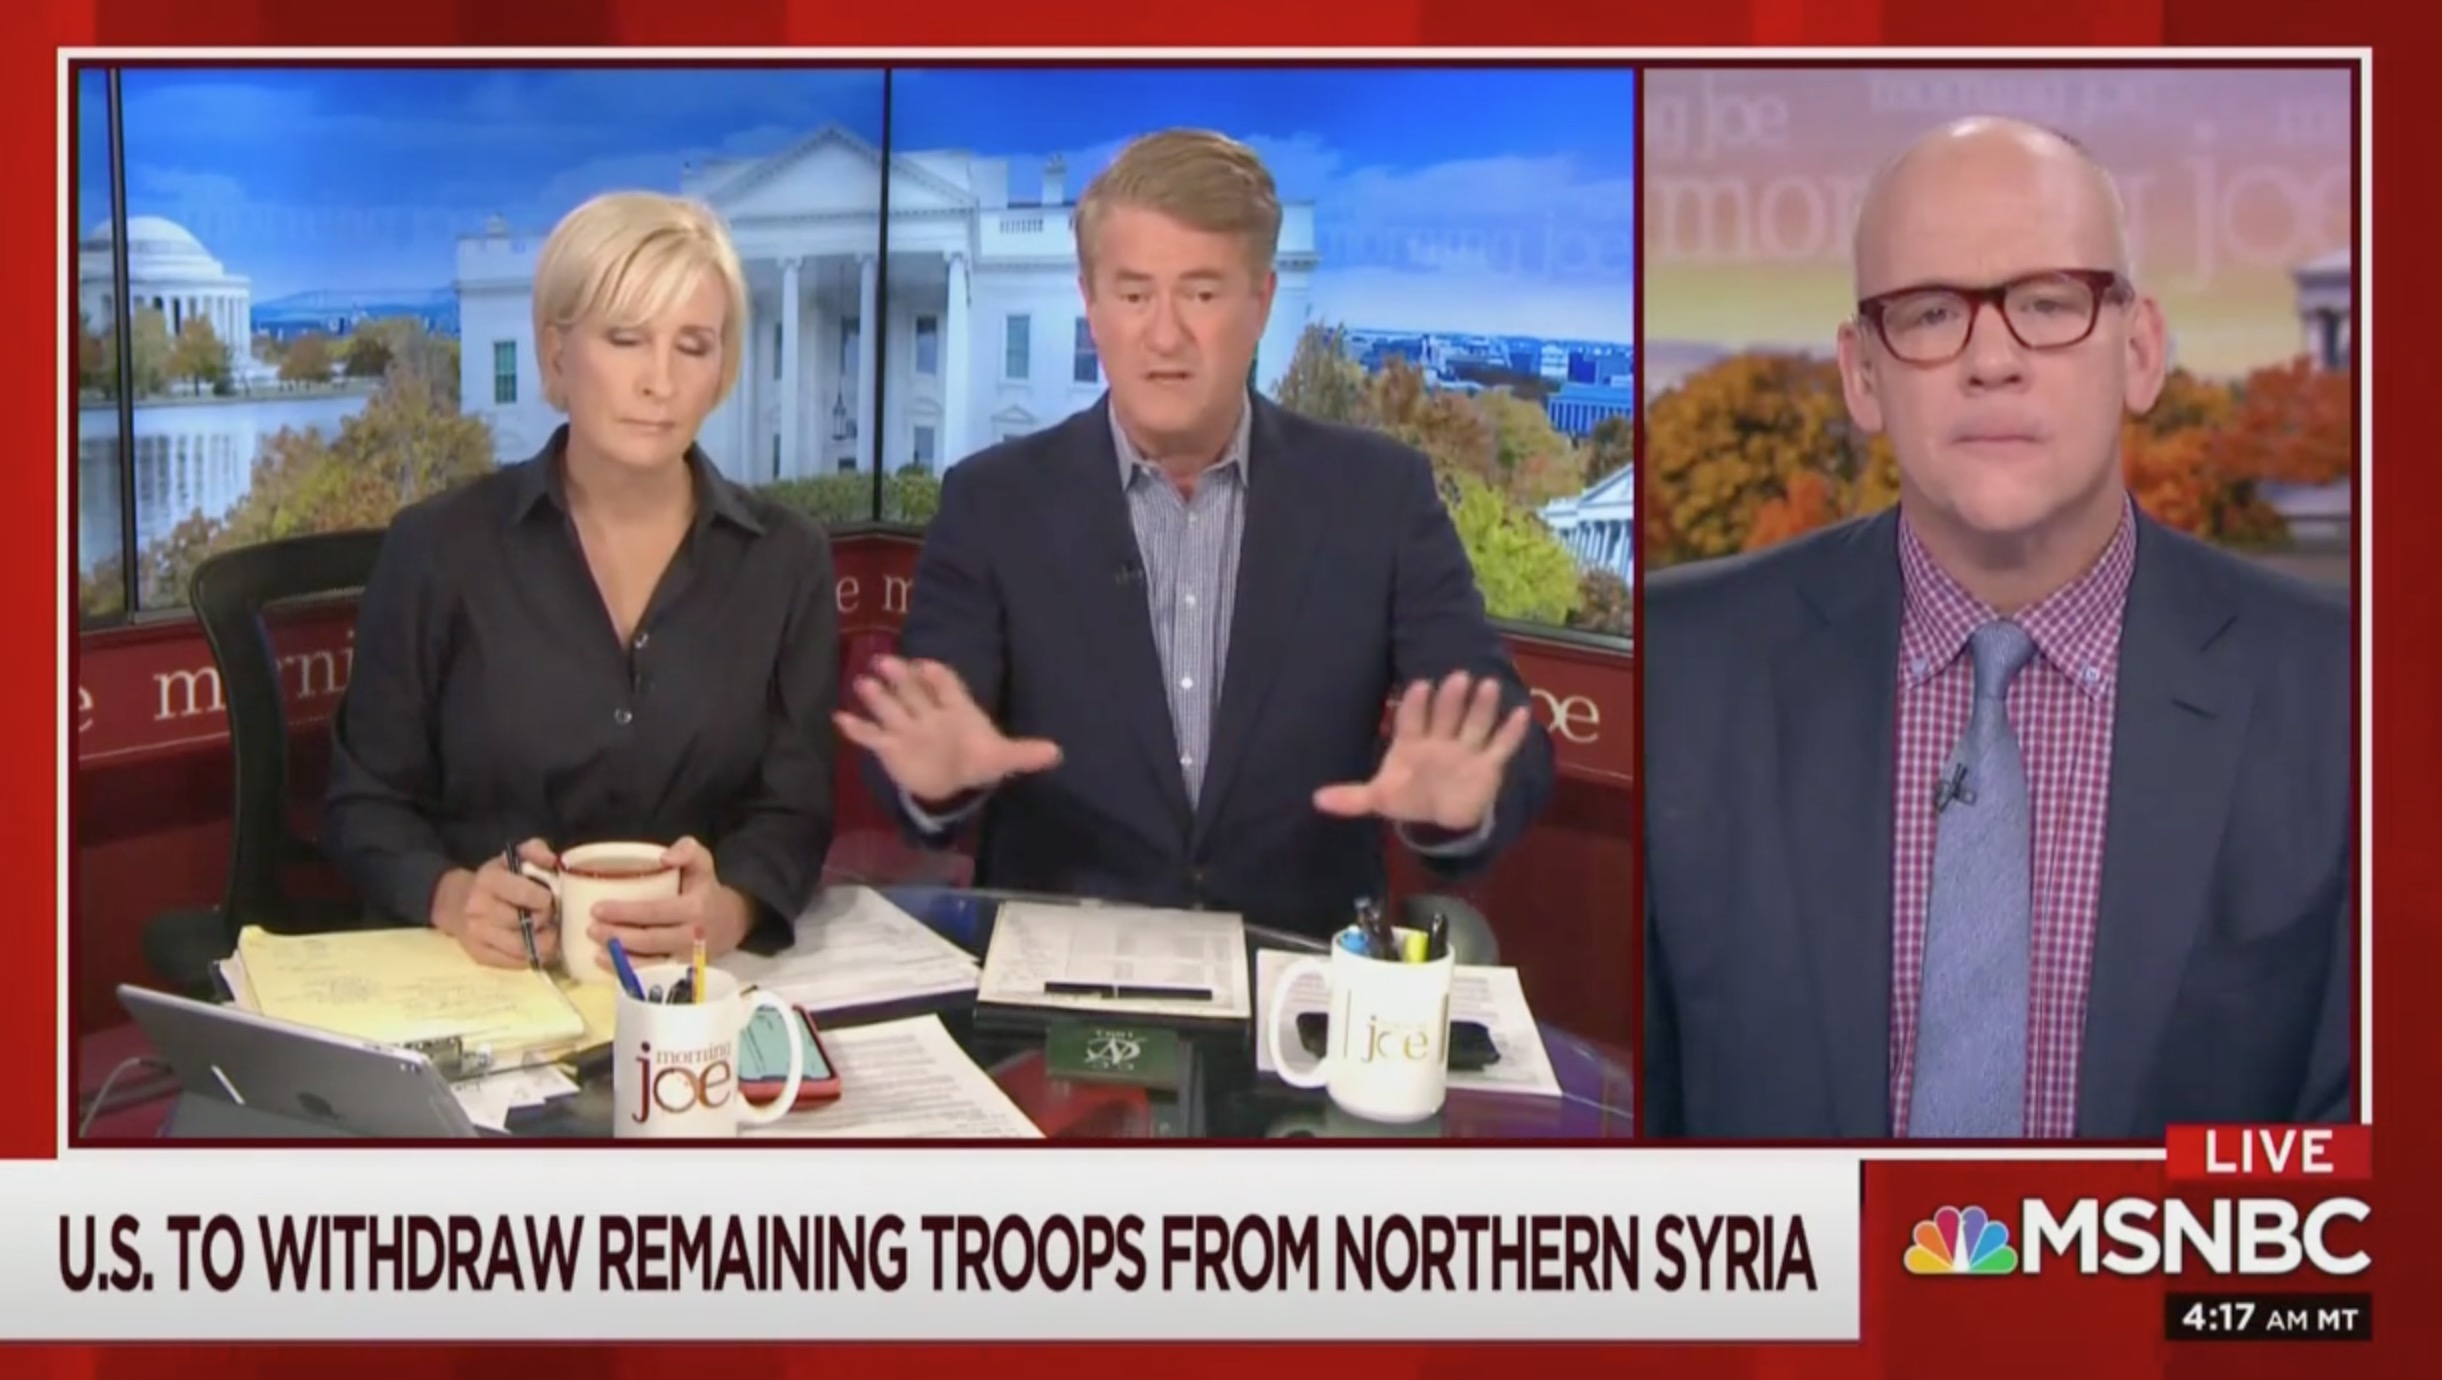 Joe Scarborough: Republicans Believe Trump is 'Aiding and Abetting' ISIS, Russia, Syria and Iran